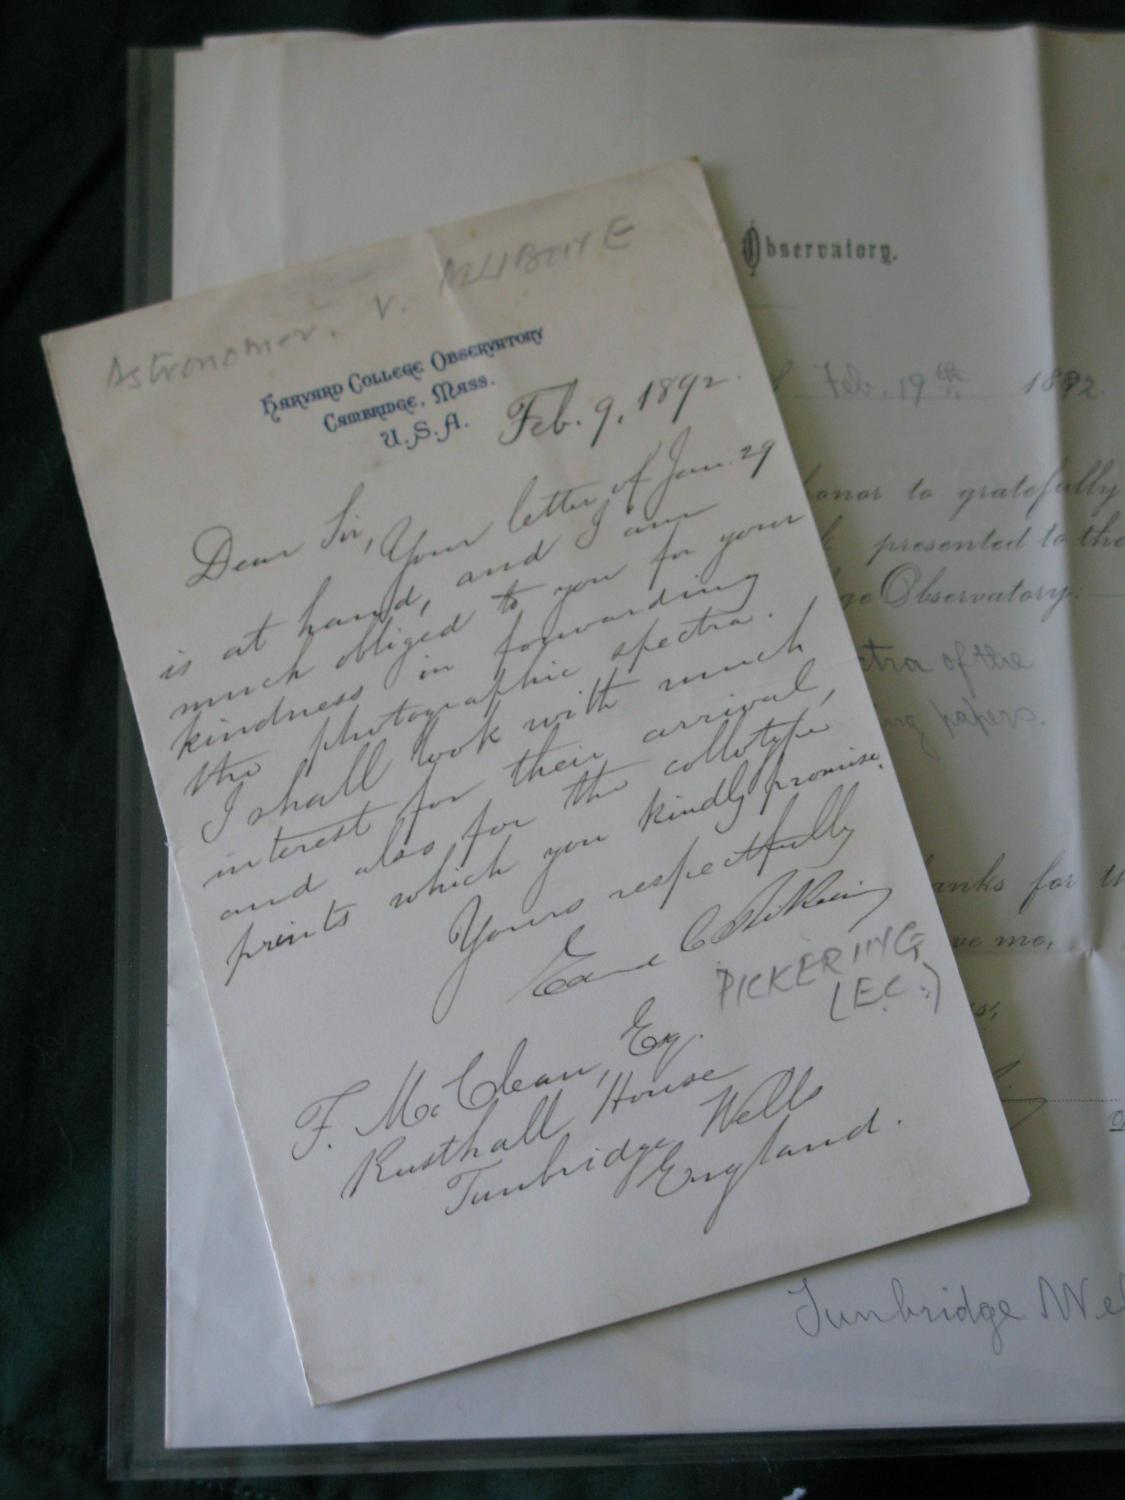 Autograph_Letter_Signed_&_two_signed_printed_items_with_ms_insertions_Edward_Pickering_astronomer_and_Director_Harvard_College_Observatory_Assez_bo